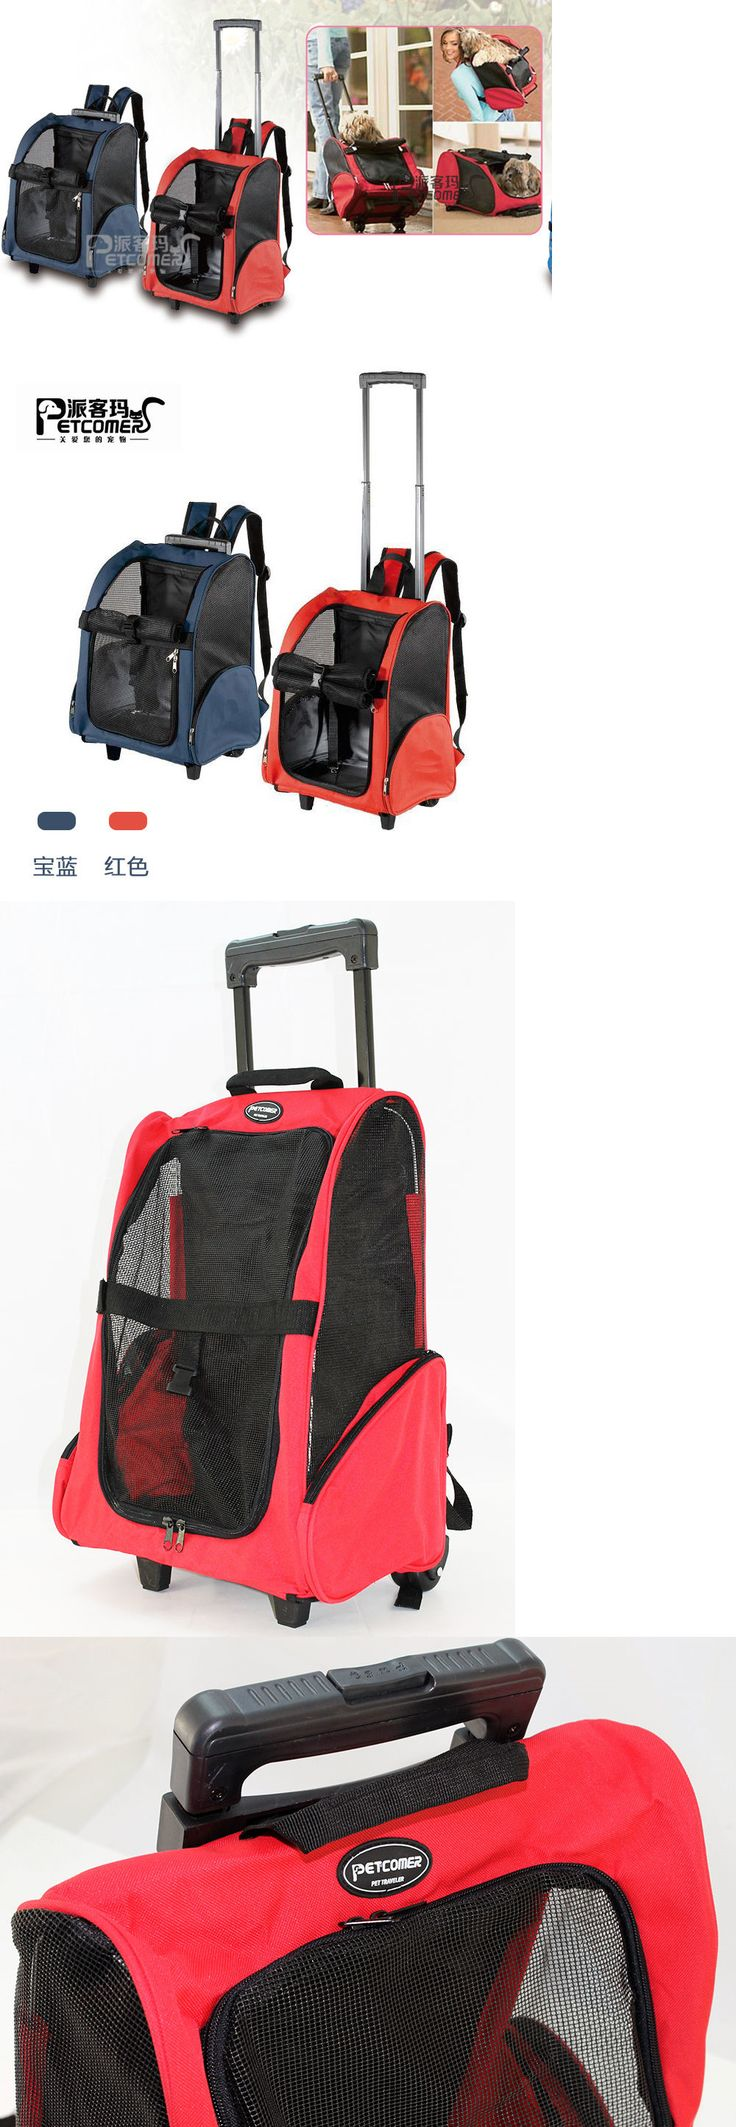 Carriers and Crates 116362: Travel Pet Carrier Dog Cat Rolling Backpack Airline Wheel Luggage Bag Red Us -> BUY IT NOW ONLY: $42.99 on eBay!